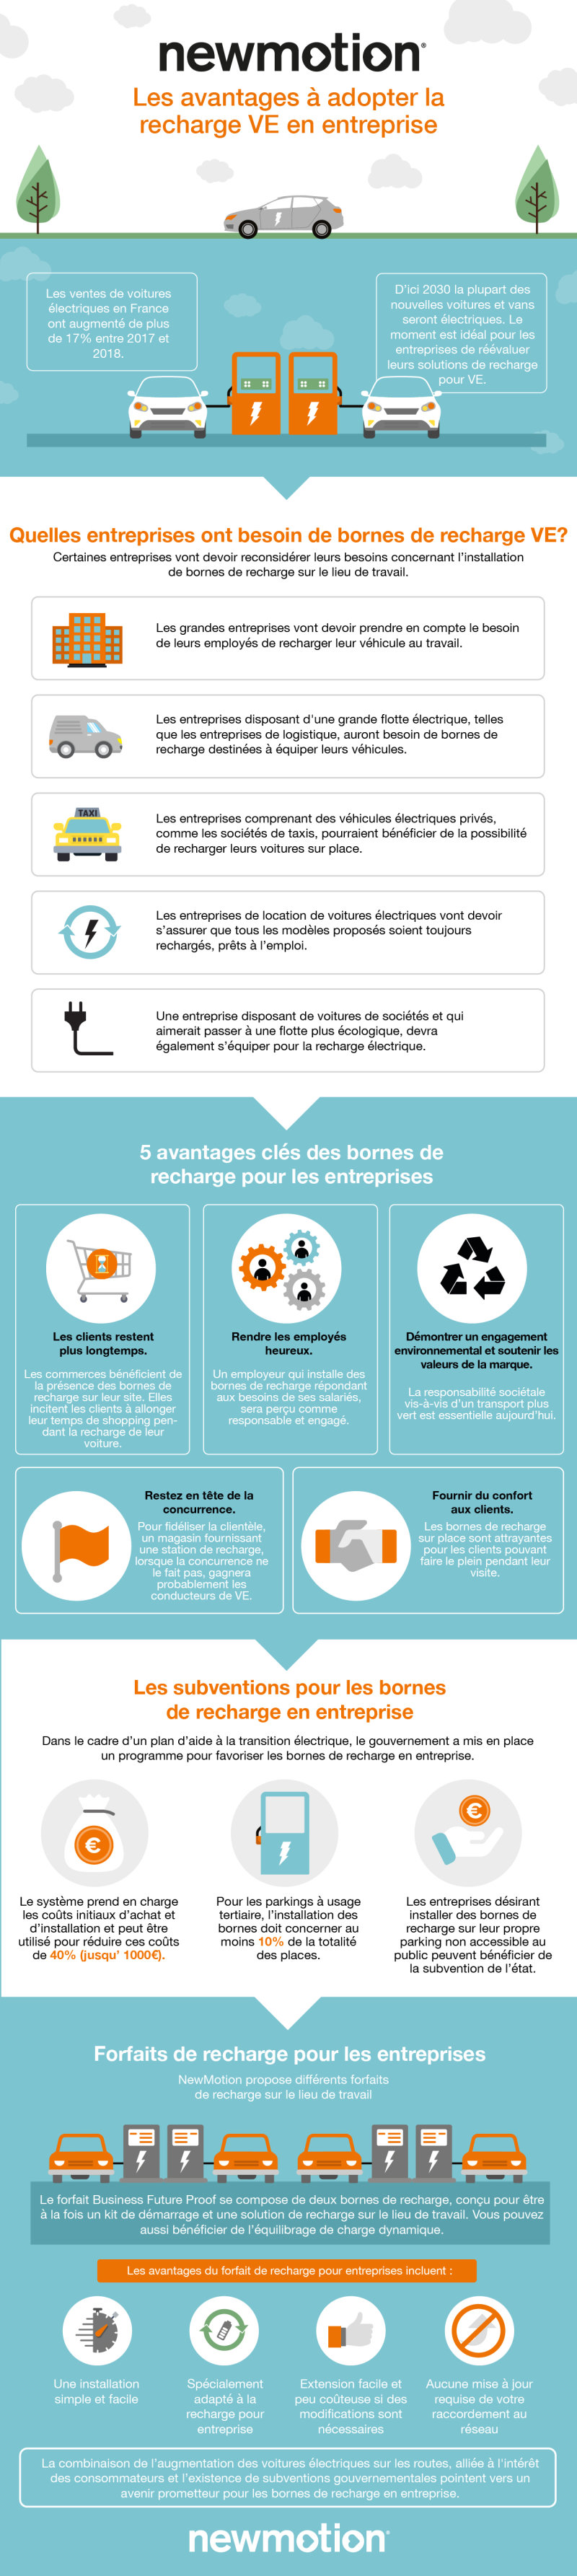 xinfographic-fr.jpg.pagespeed.ic.GEUHiymsfS